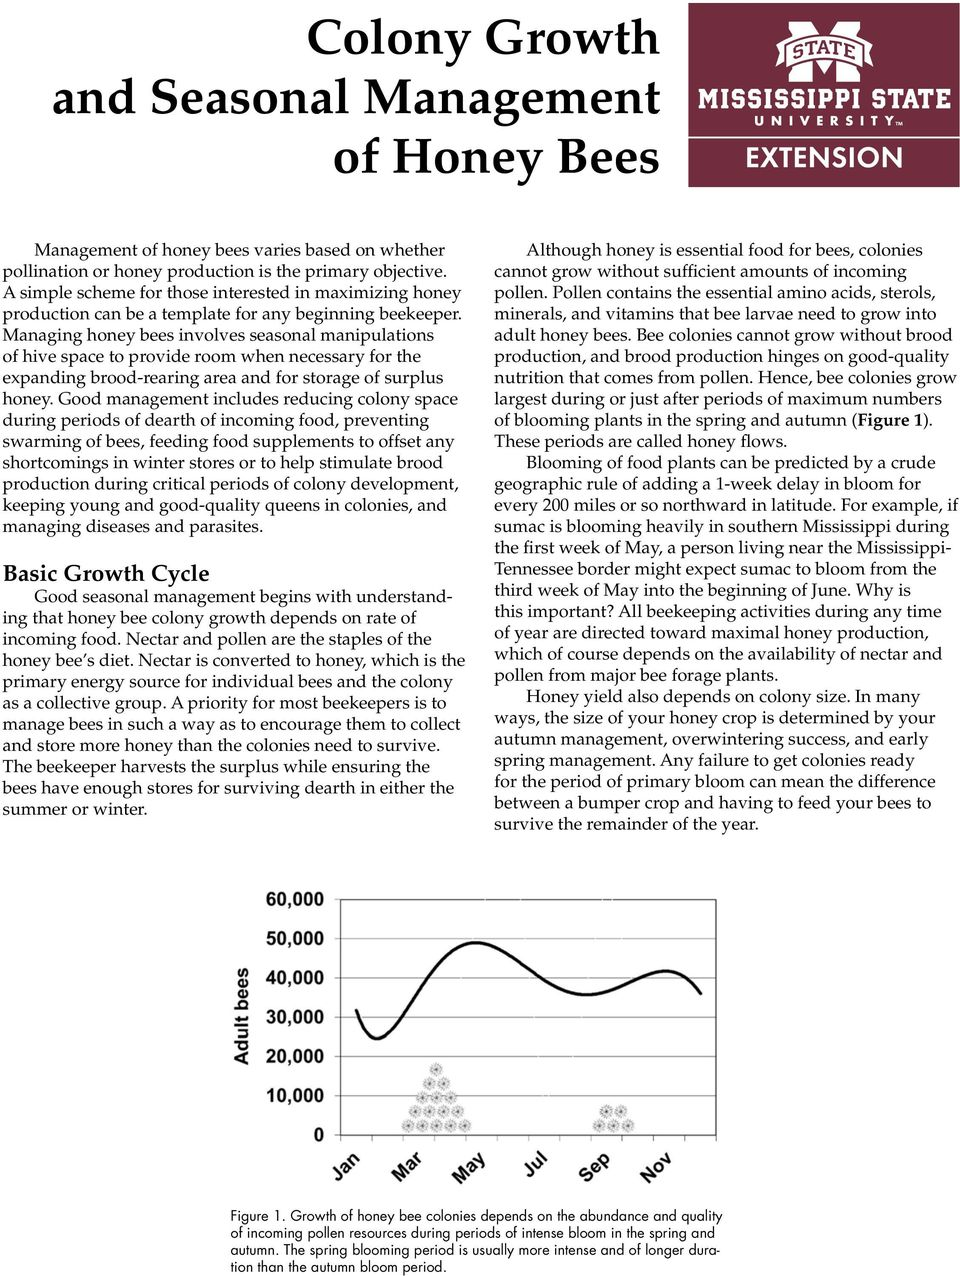 Managing honey bees involves seasonal manipulations of hive space to provide room when necessary for the expanding brood-rearing area and for storage of surplus honey.